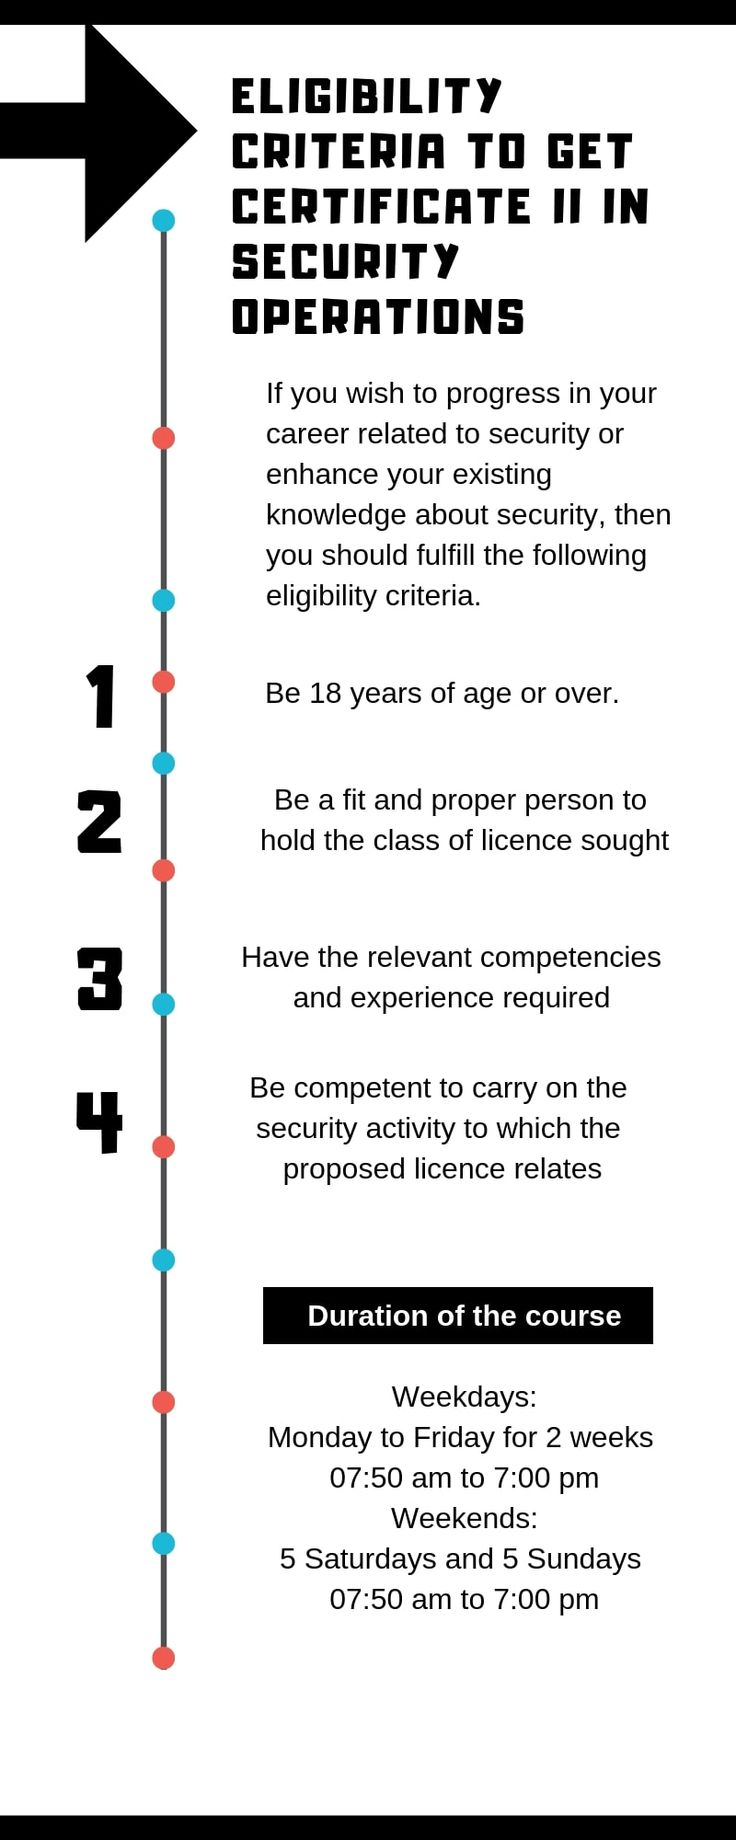 Eligibility criteria to get certificate ii in security